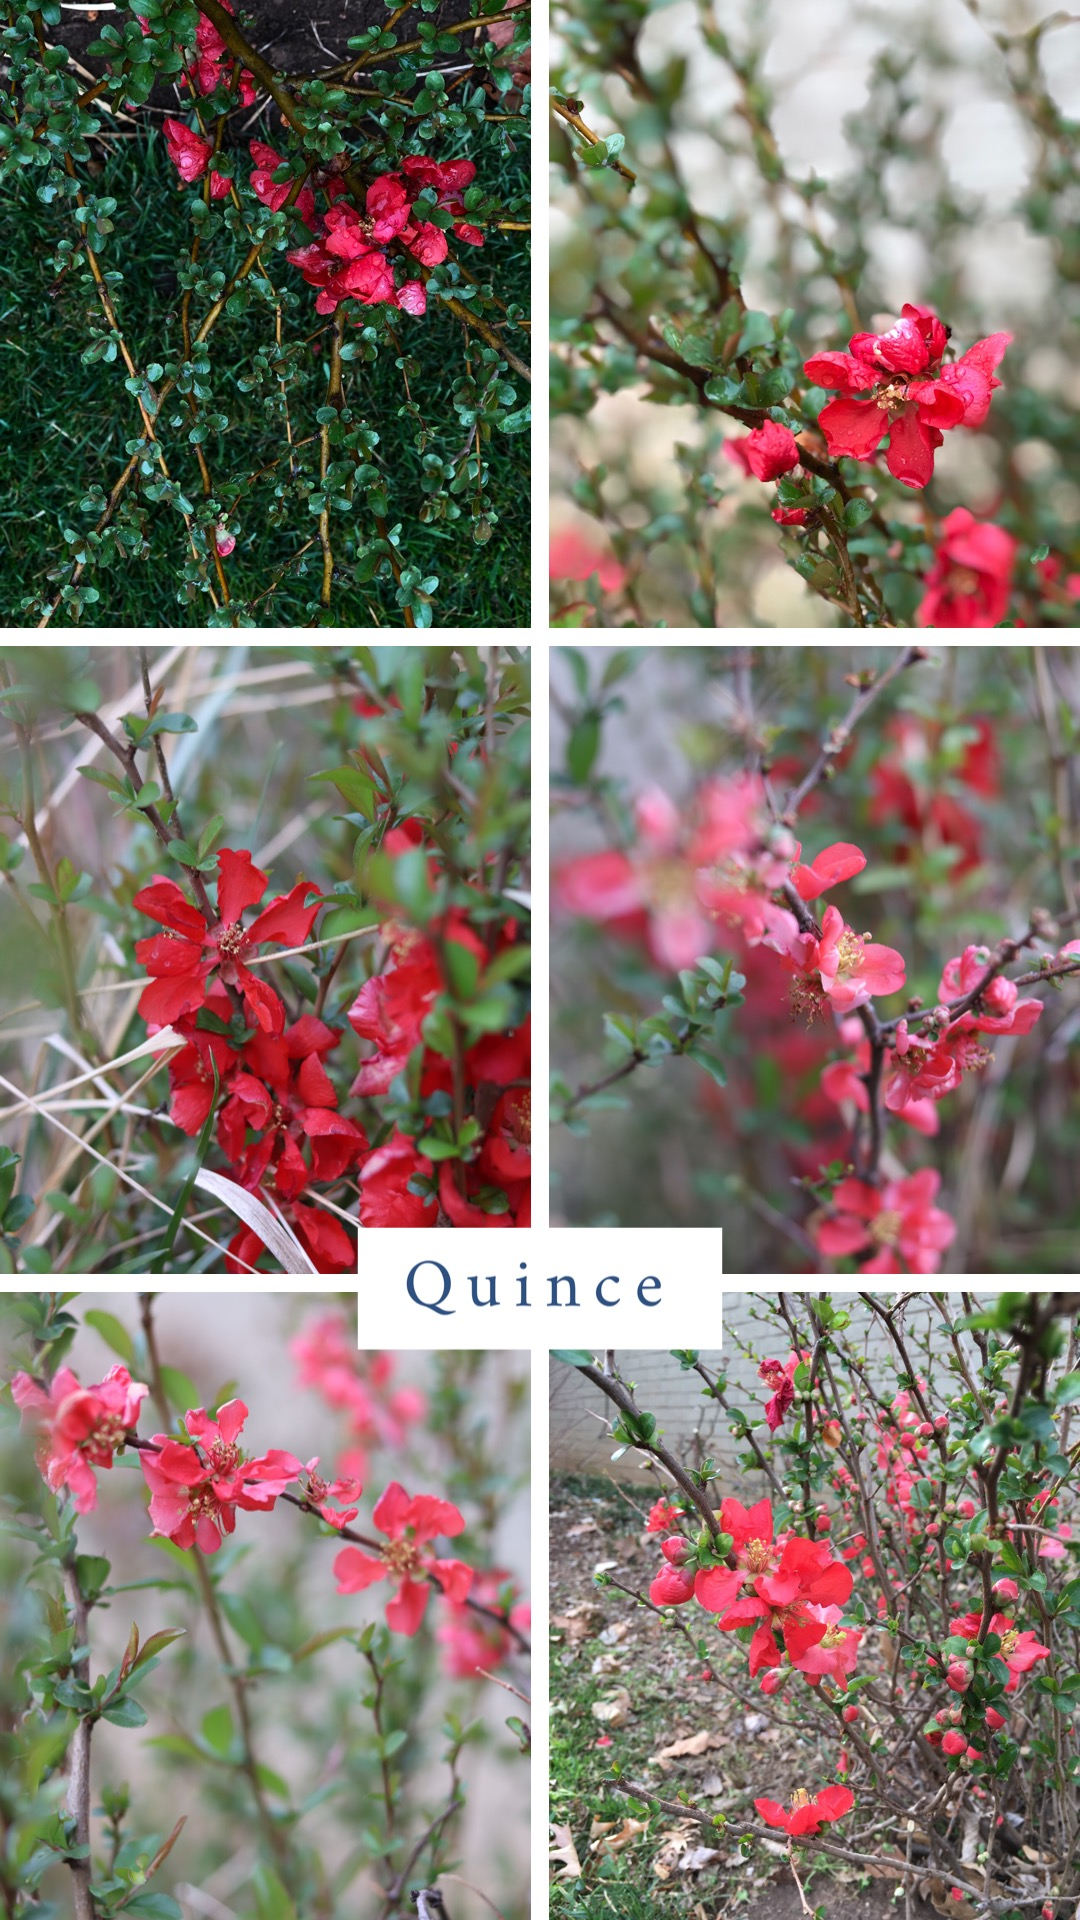 "Flowering Quince (Chaenomeles japonica ""Texas Scarlet').  Another early bloomer known for adding splashes of red to the landscape. It also performs best in full sun and tolerates partial shade but with fewer blossoms. Considered a moderate grower and mid-sized shrub, most varieties reach 4-5'. It does best if planted where it can grow to its natural size and shape. If pruning is required, only prune in the spring after blooms have faded. Flowering Quince is loved by butterflies and hummingbirds. The plant is very draught tolerant once it is established and it will tolerate most soils, but like most plants would enjoy well drained areas. Another variety, Chaenomeles speciossa Double Take Series has blooms that resemble camellias."